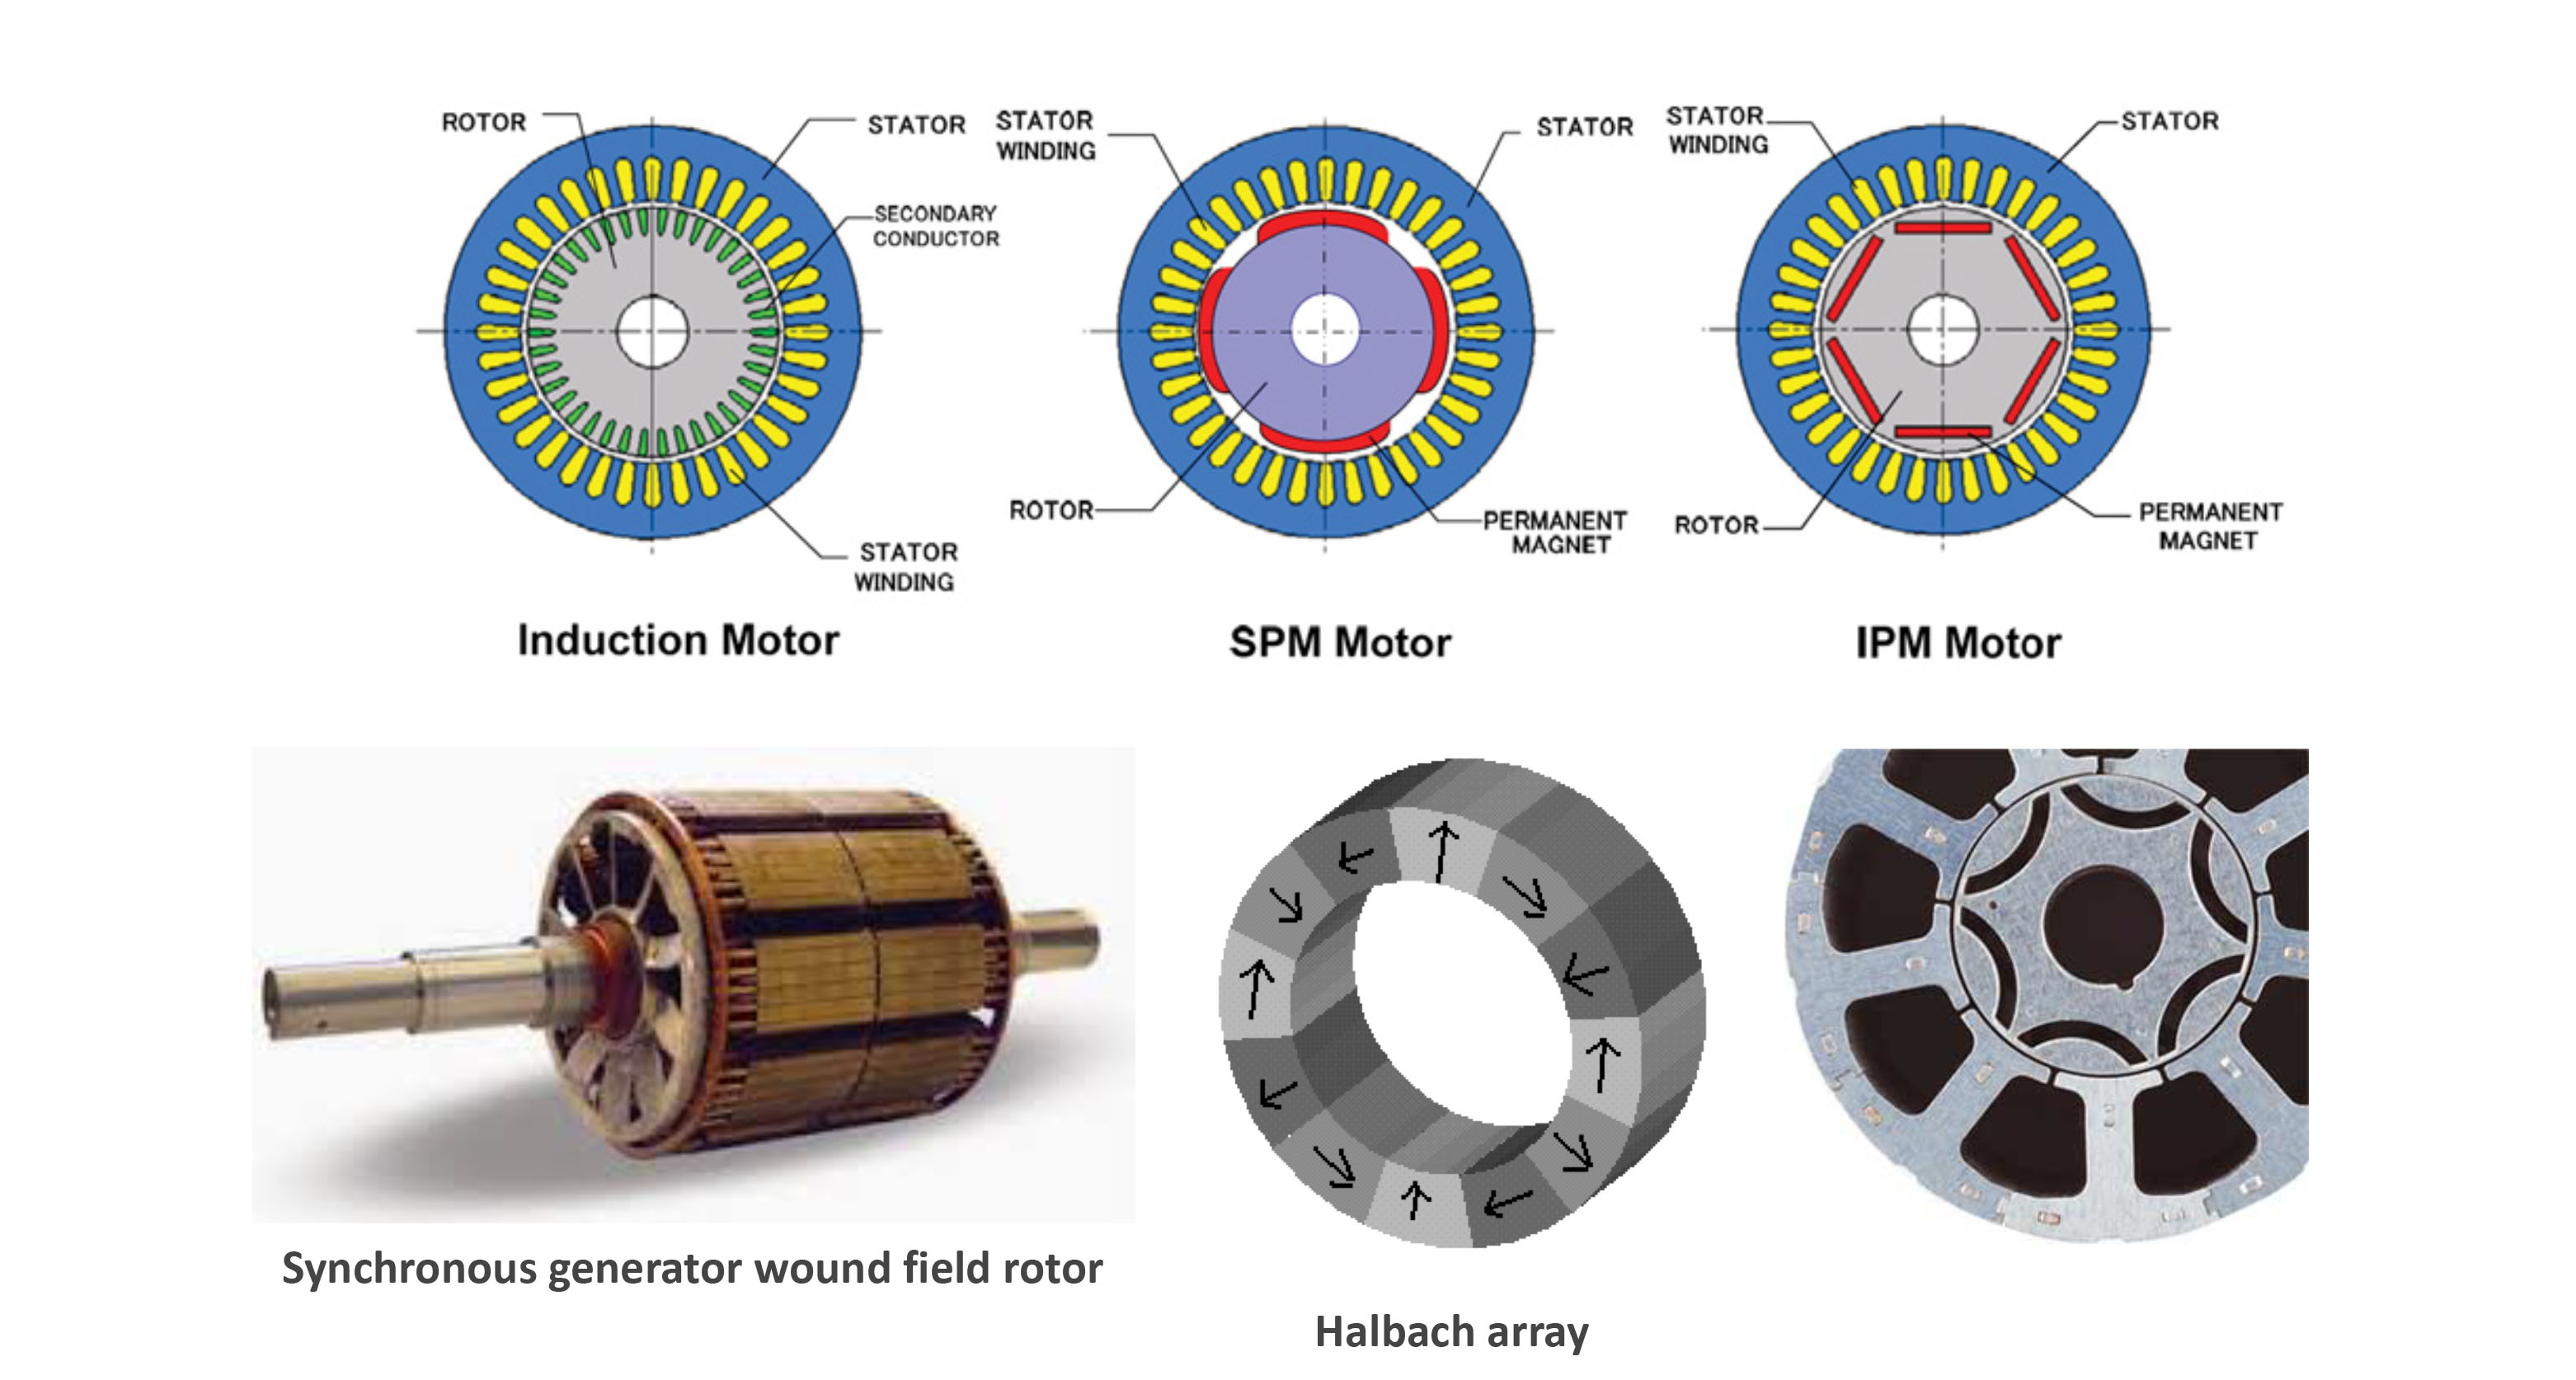 rotor constructions